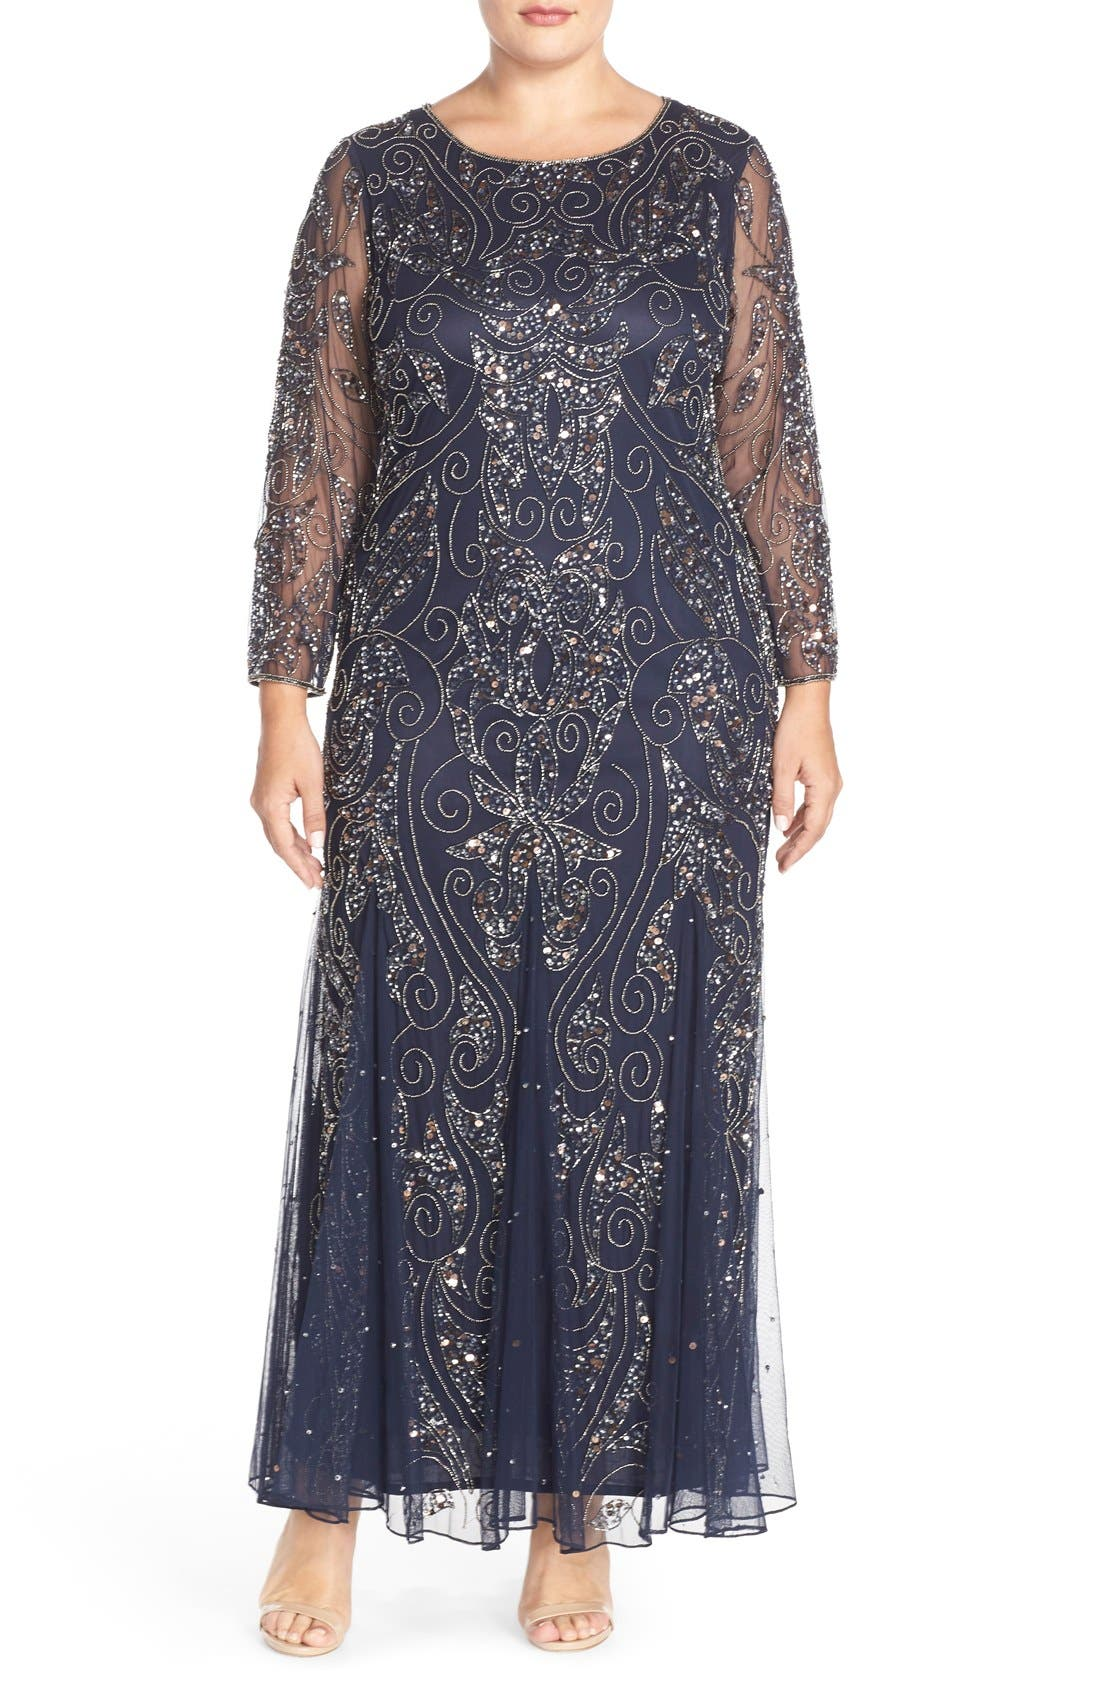 Downton Abbey Inspired Dresses Plus Size Womens Pisarro Nights Embellished Three Quarter Sleeve Gown Size 14W - Blue $238.00 AT vintagedancer.com